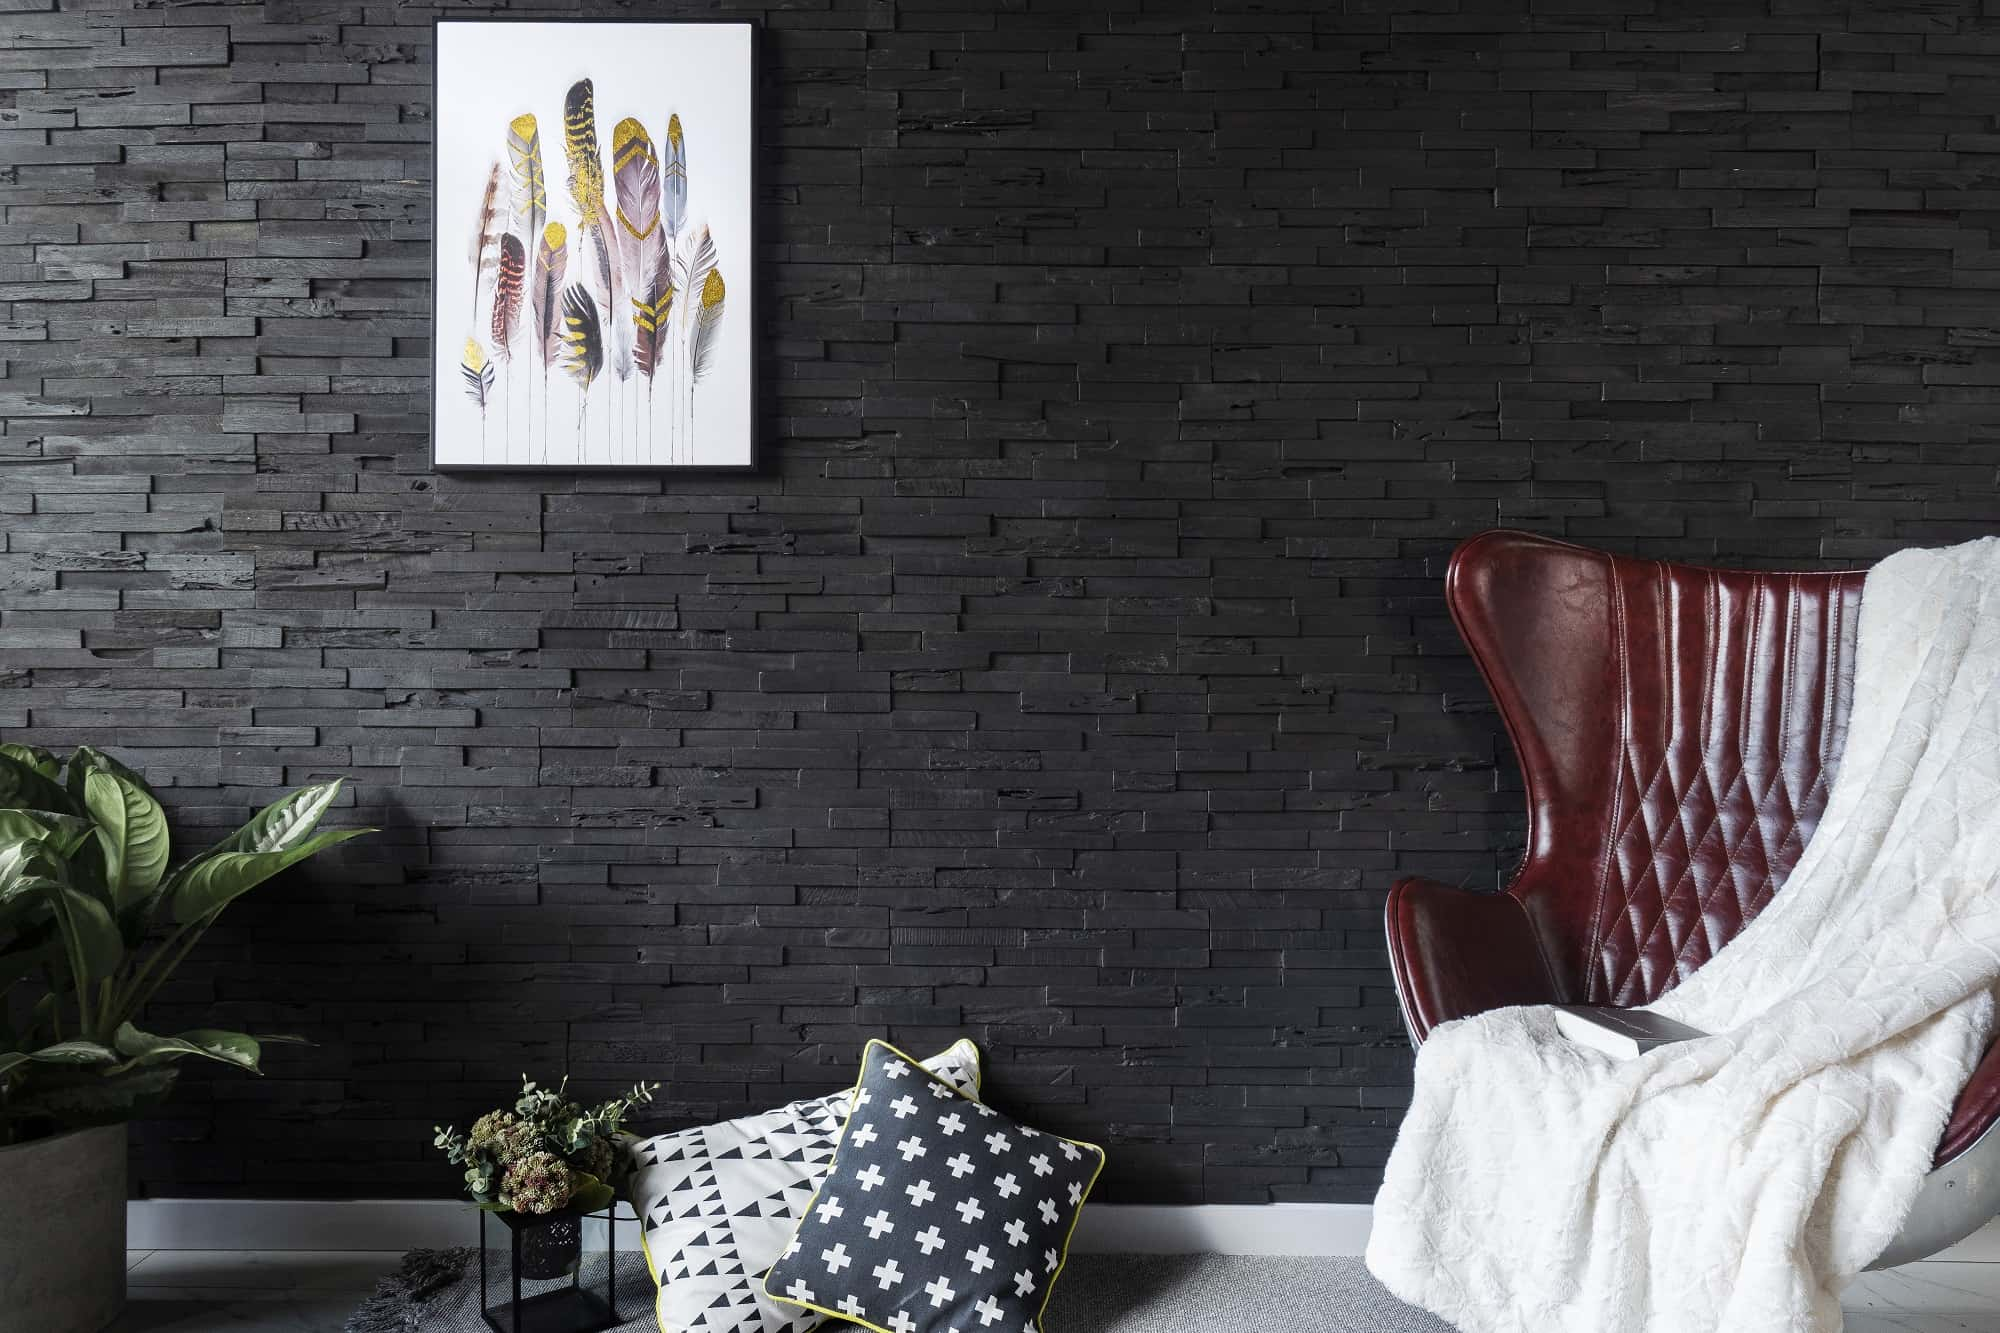 Reclaimed Wood Panels: An Eco-Friendly Way to Enhance Your Home Decor. Unusual and contrasting black planked wall